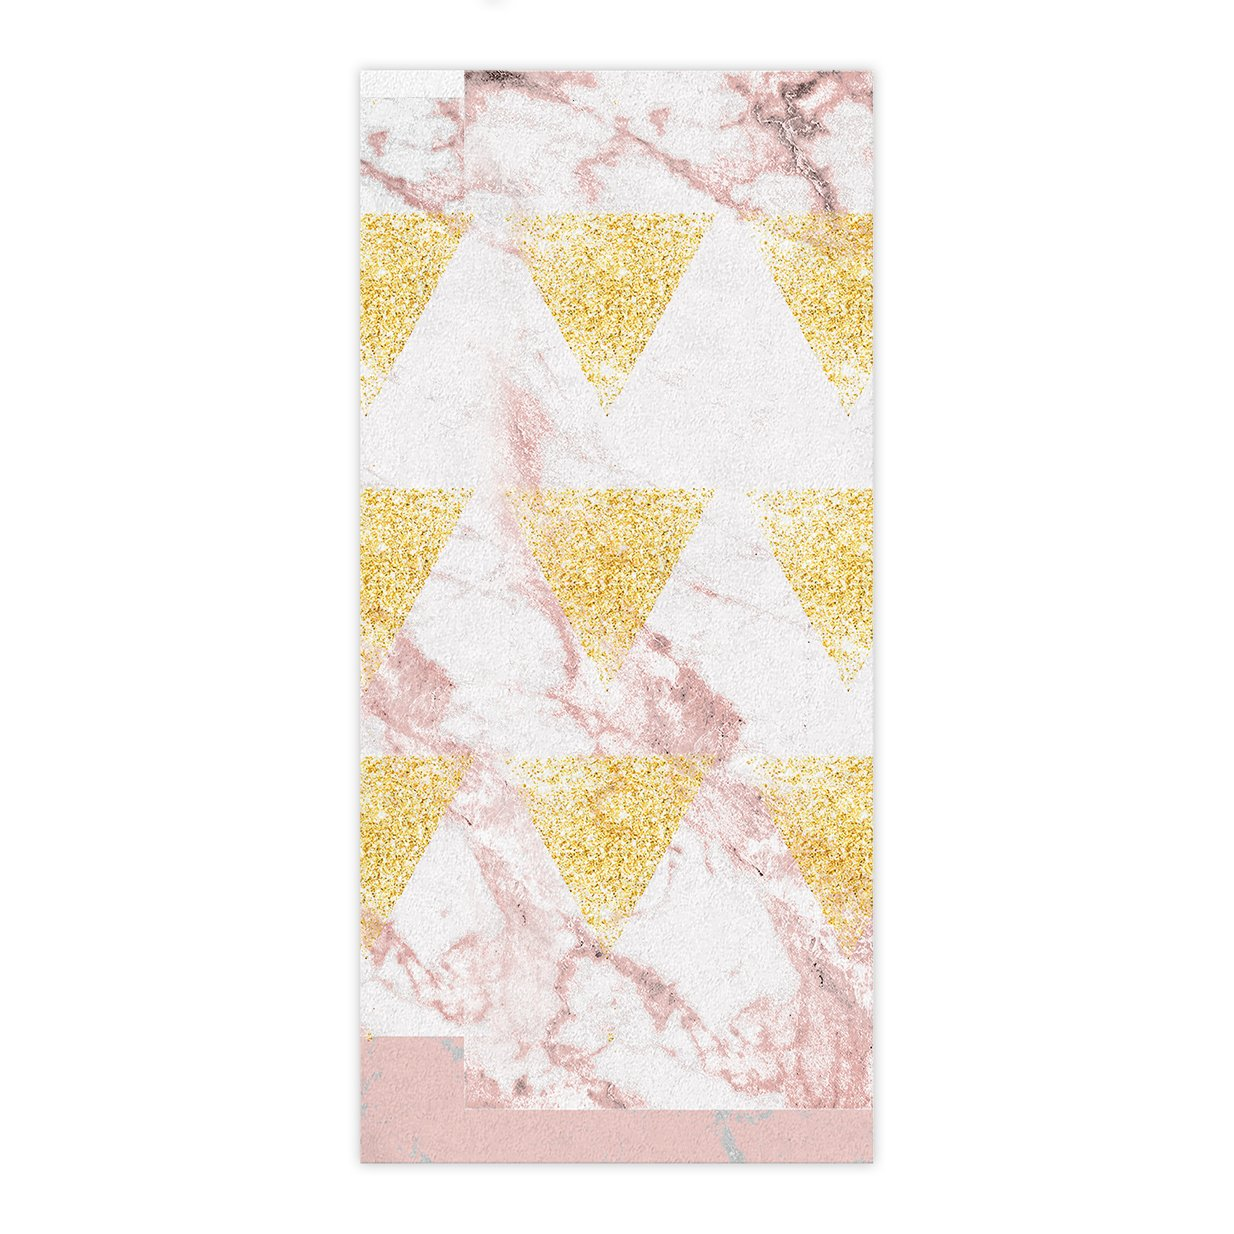 OxOHome Custom Bath Towel Quick Dry Absorbent Towels Spa Shower Wrap for College Dorms, Gyms, Locker Rooms, 27.5 x 55 inch - Modern Rose Gold Marble